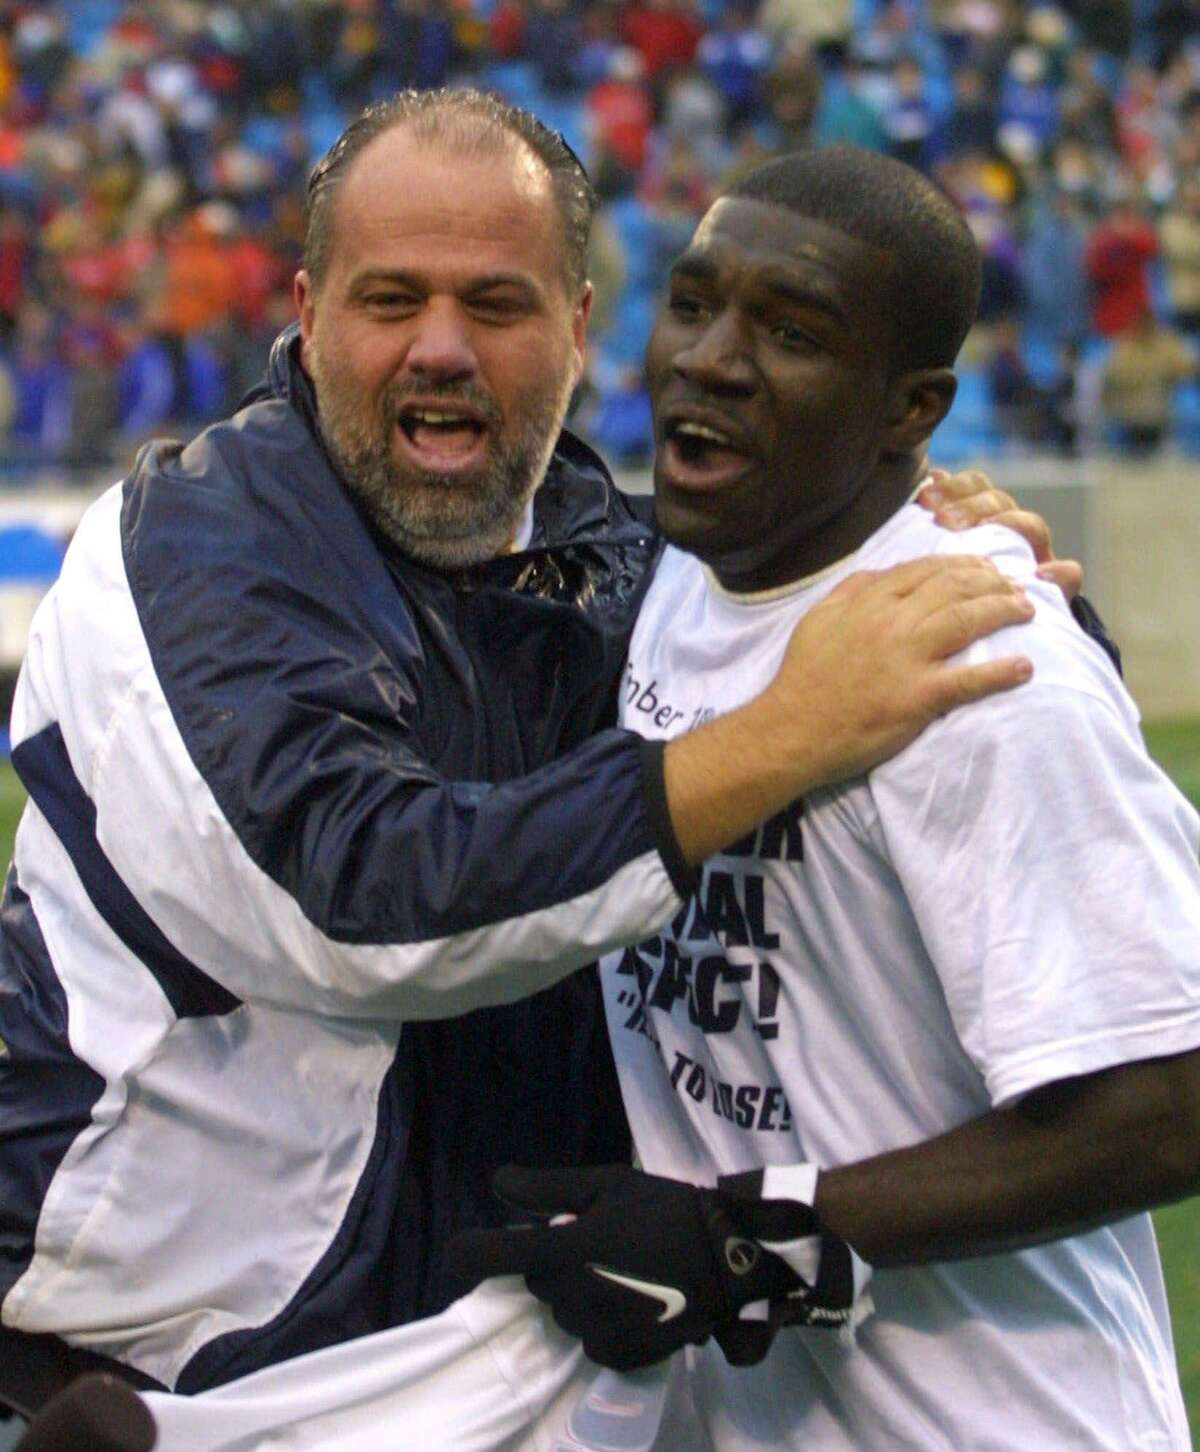 UConn men's soccer coach Ray Reid, left, celebrates with Chris Gbandi after winning the NCAA championship game against Creighton in 2000. Reid is creating an endowment to help minority soccer coaches get more educational coaching experience.